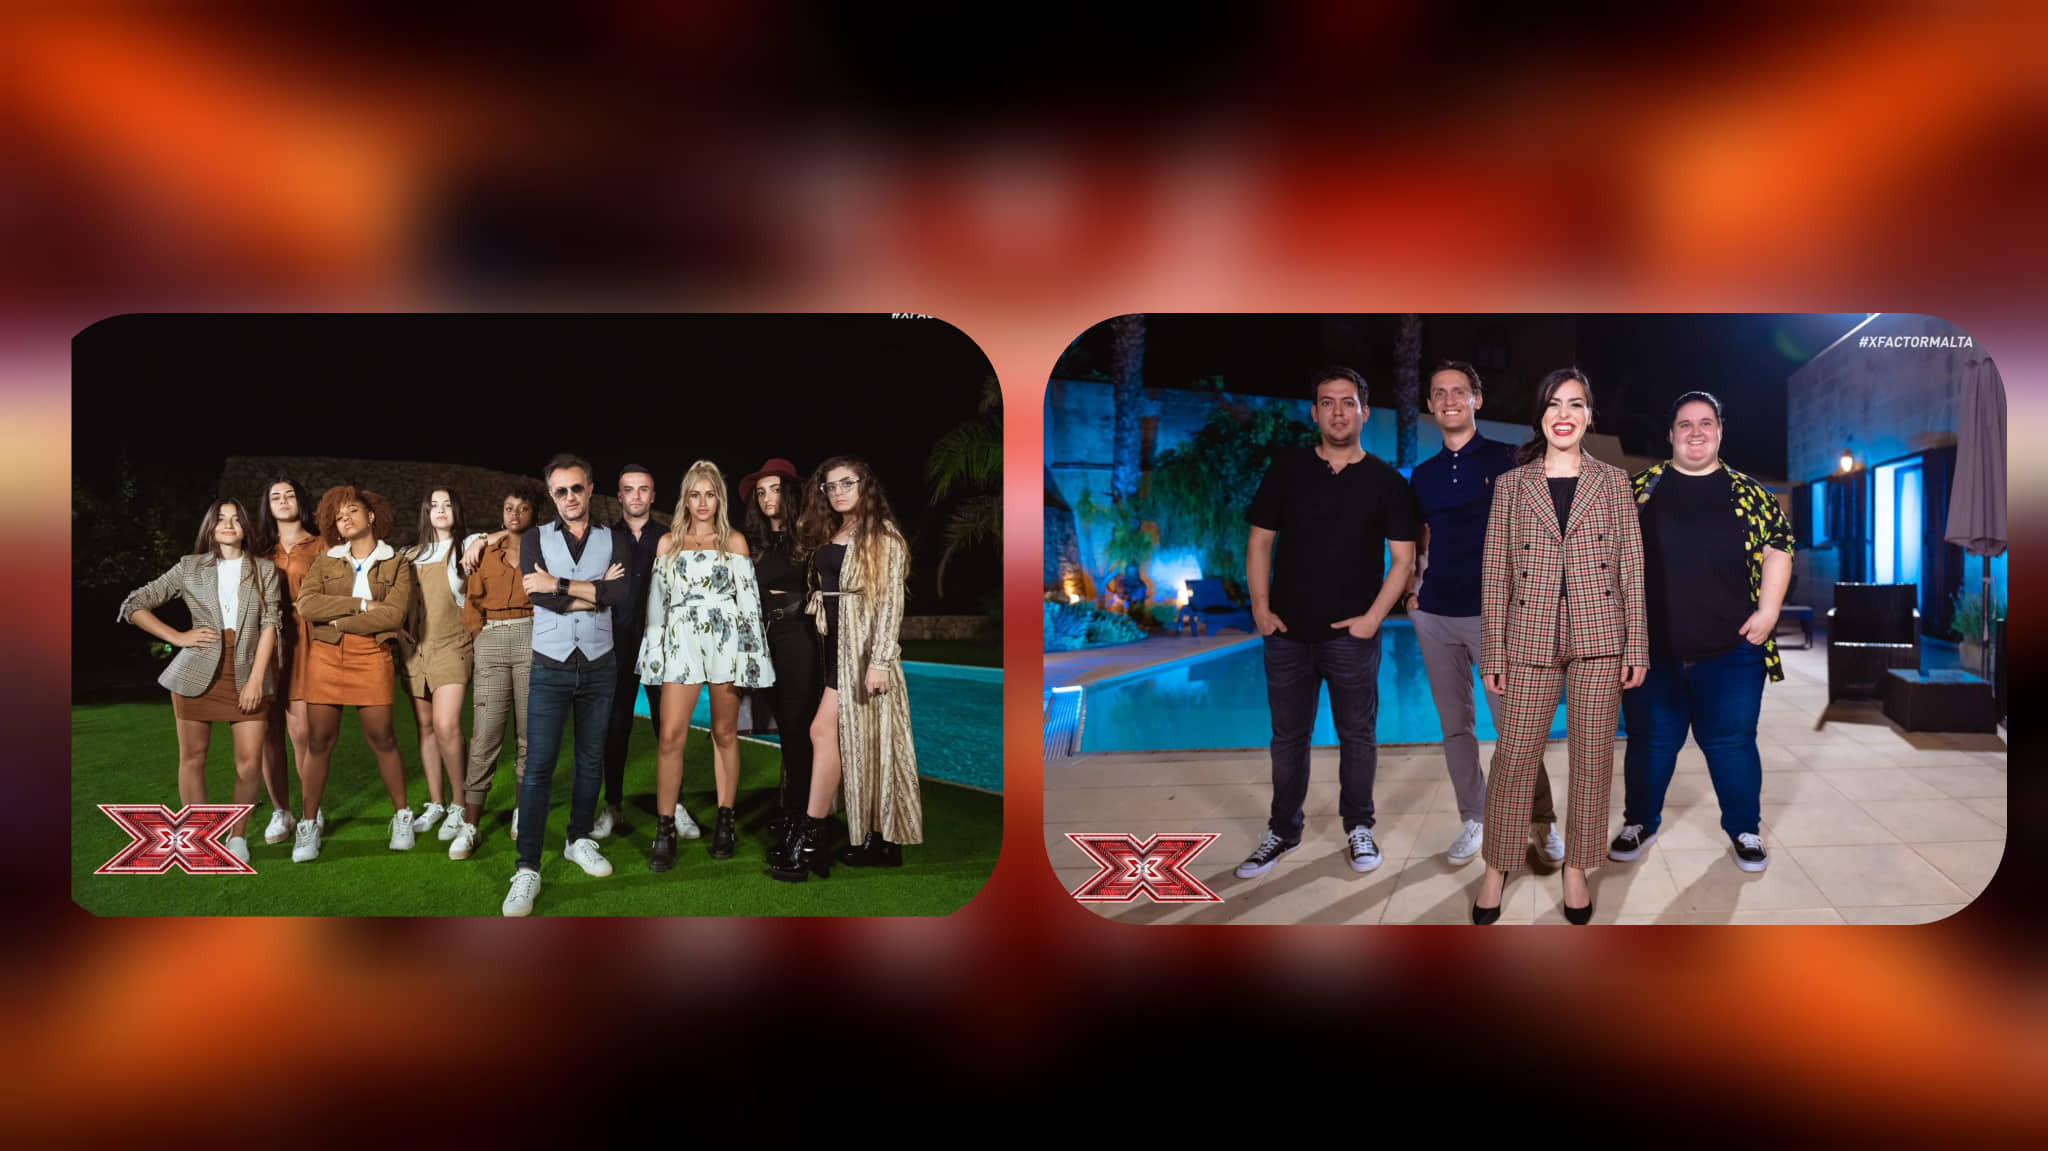 Malta: The Groups and Overs that continue to the Live shows after the Judges' Houses on X-factor Malta